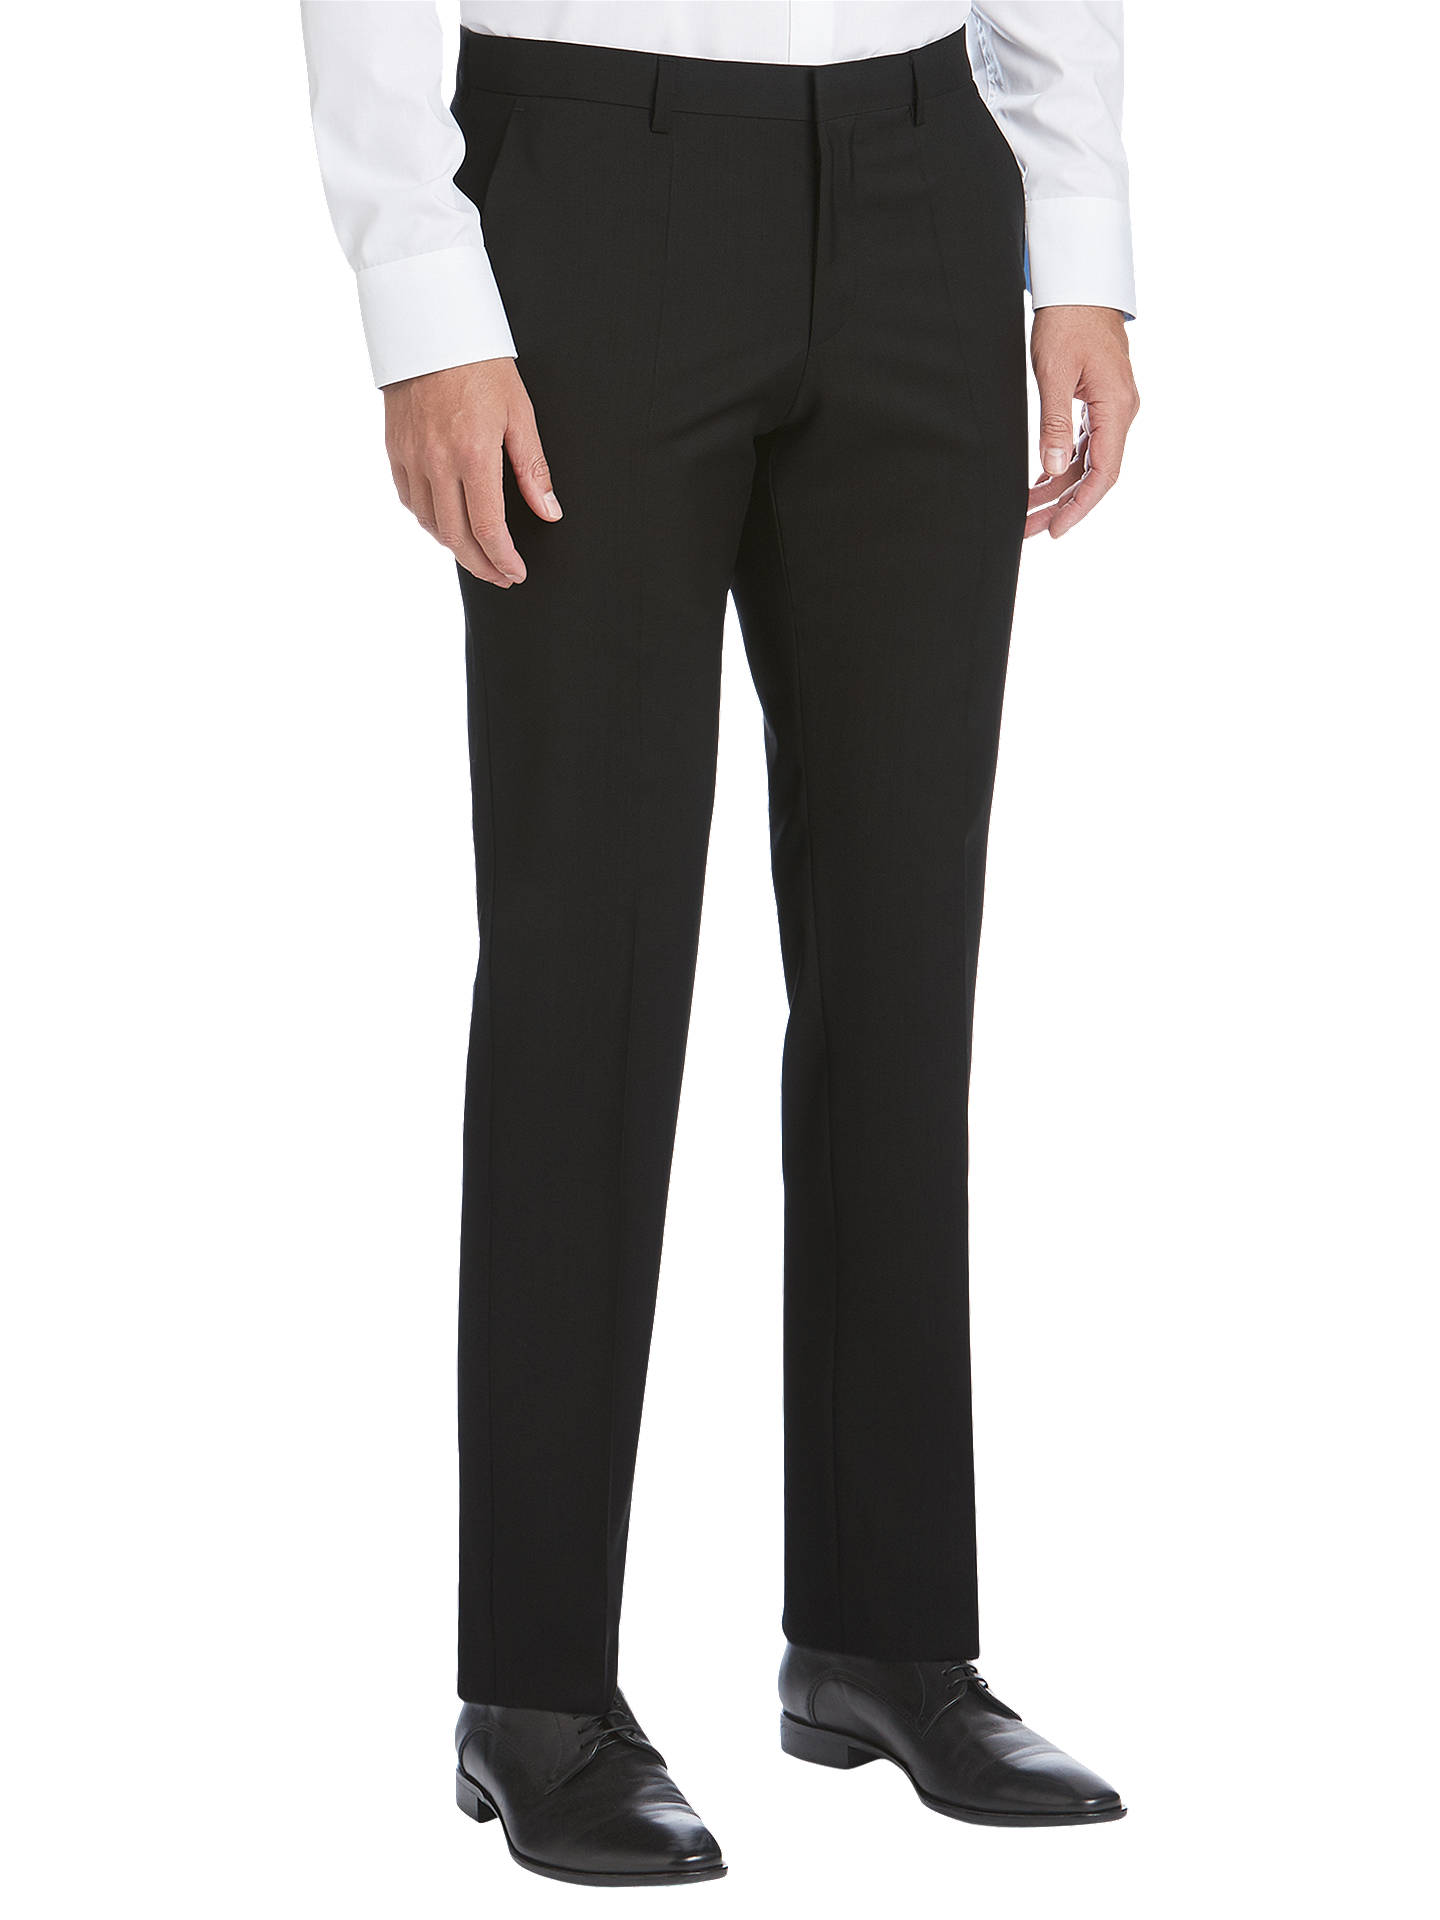 8b1e77b0592 HUGO by Hugo Boss Virgin Wool Slim Fit Suit Trousers, Black